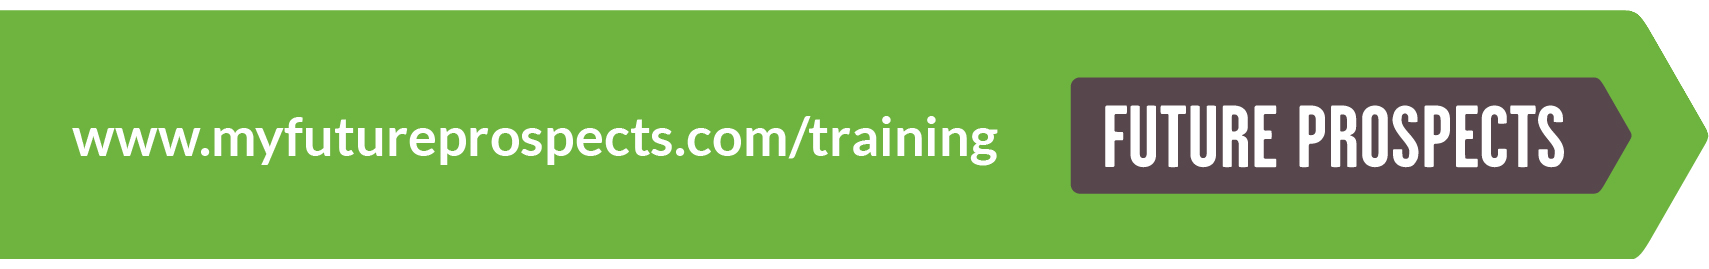 FP Training Services